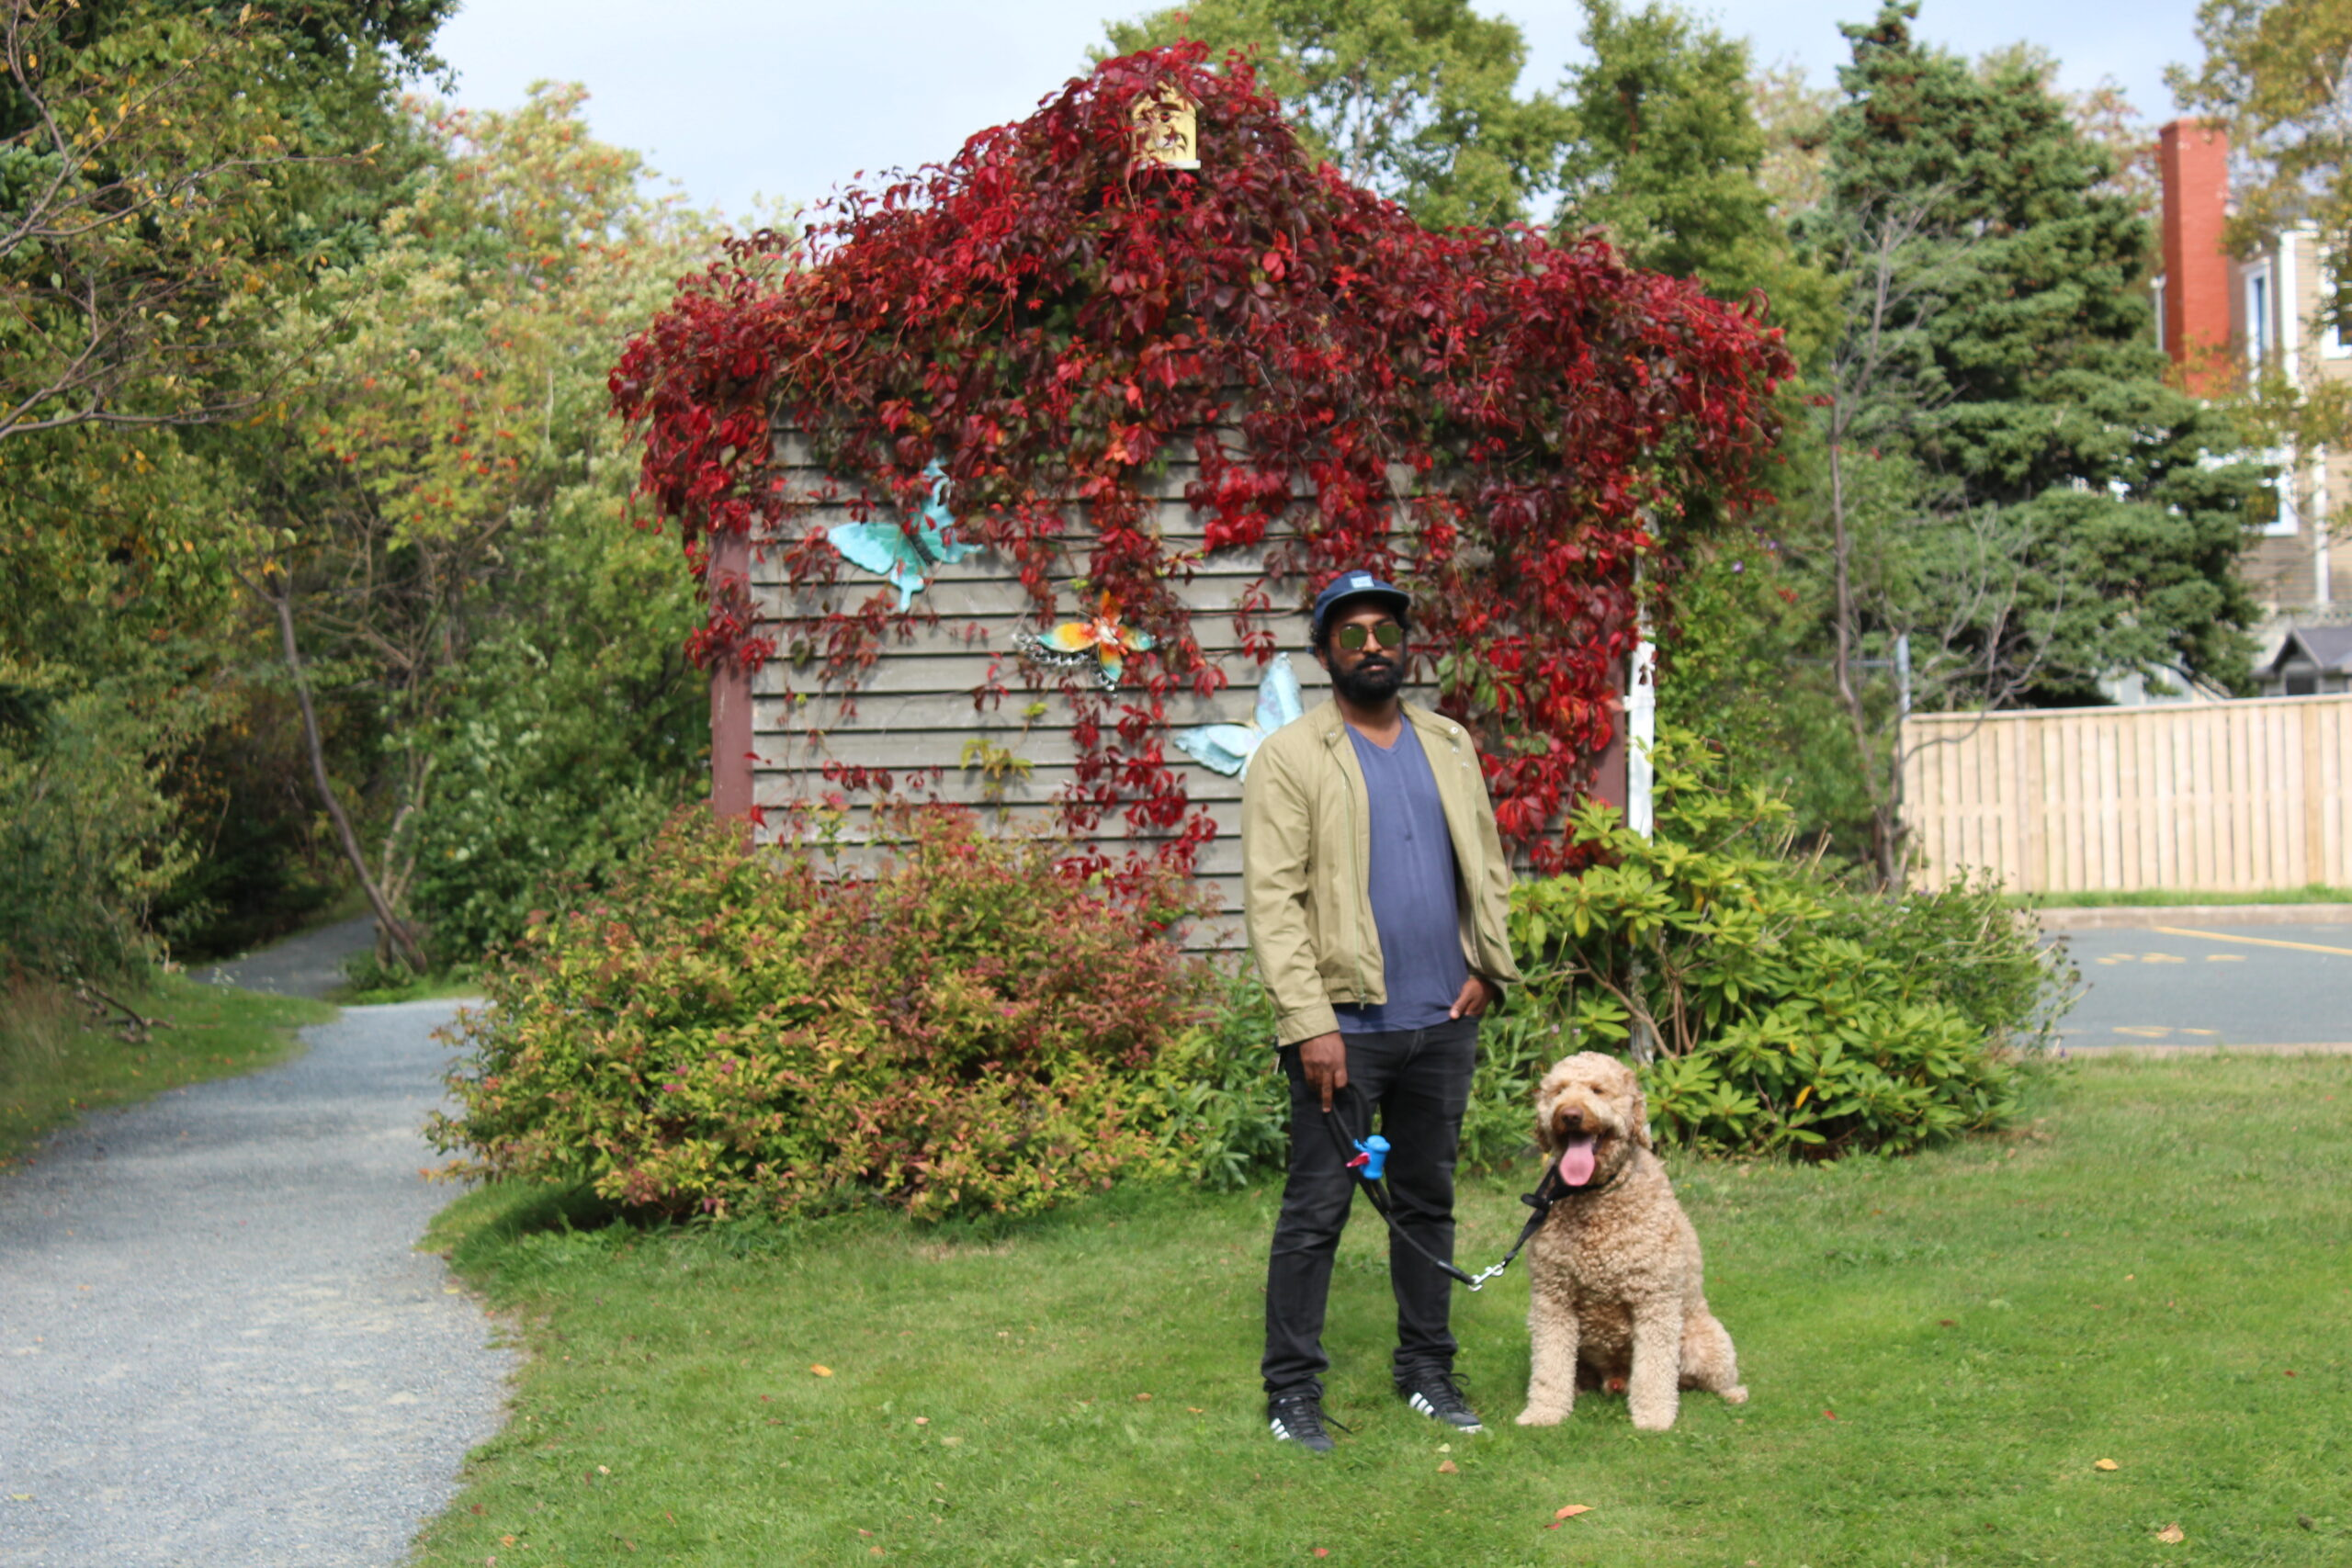 Thavanathan with the family dog